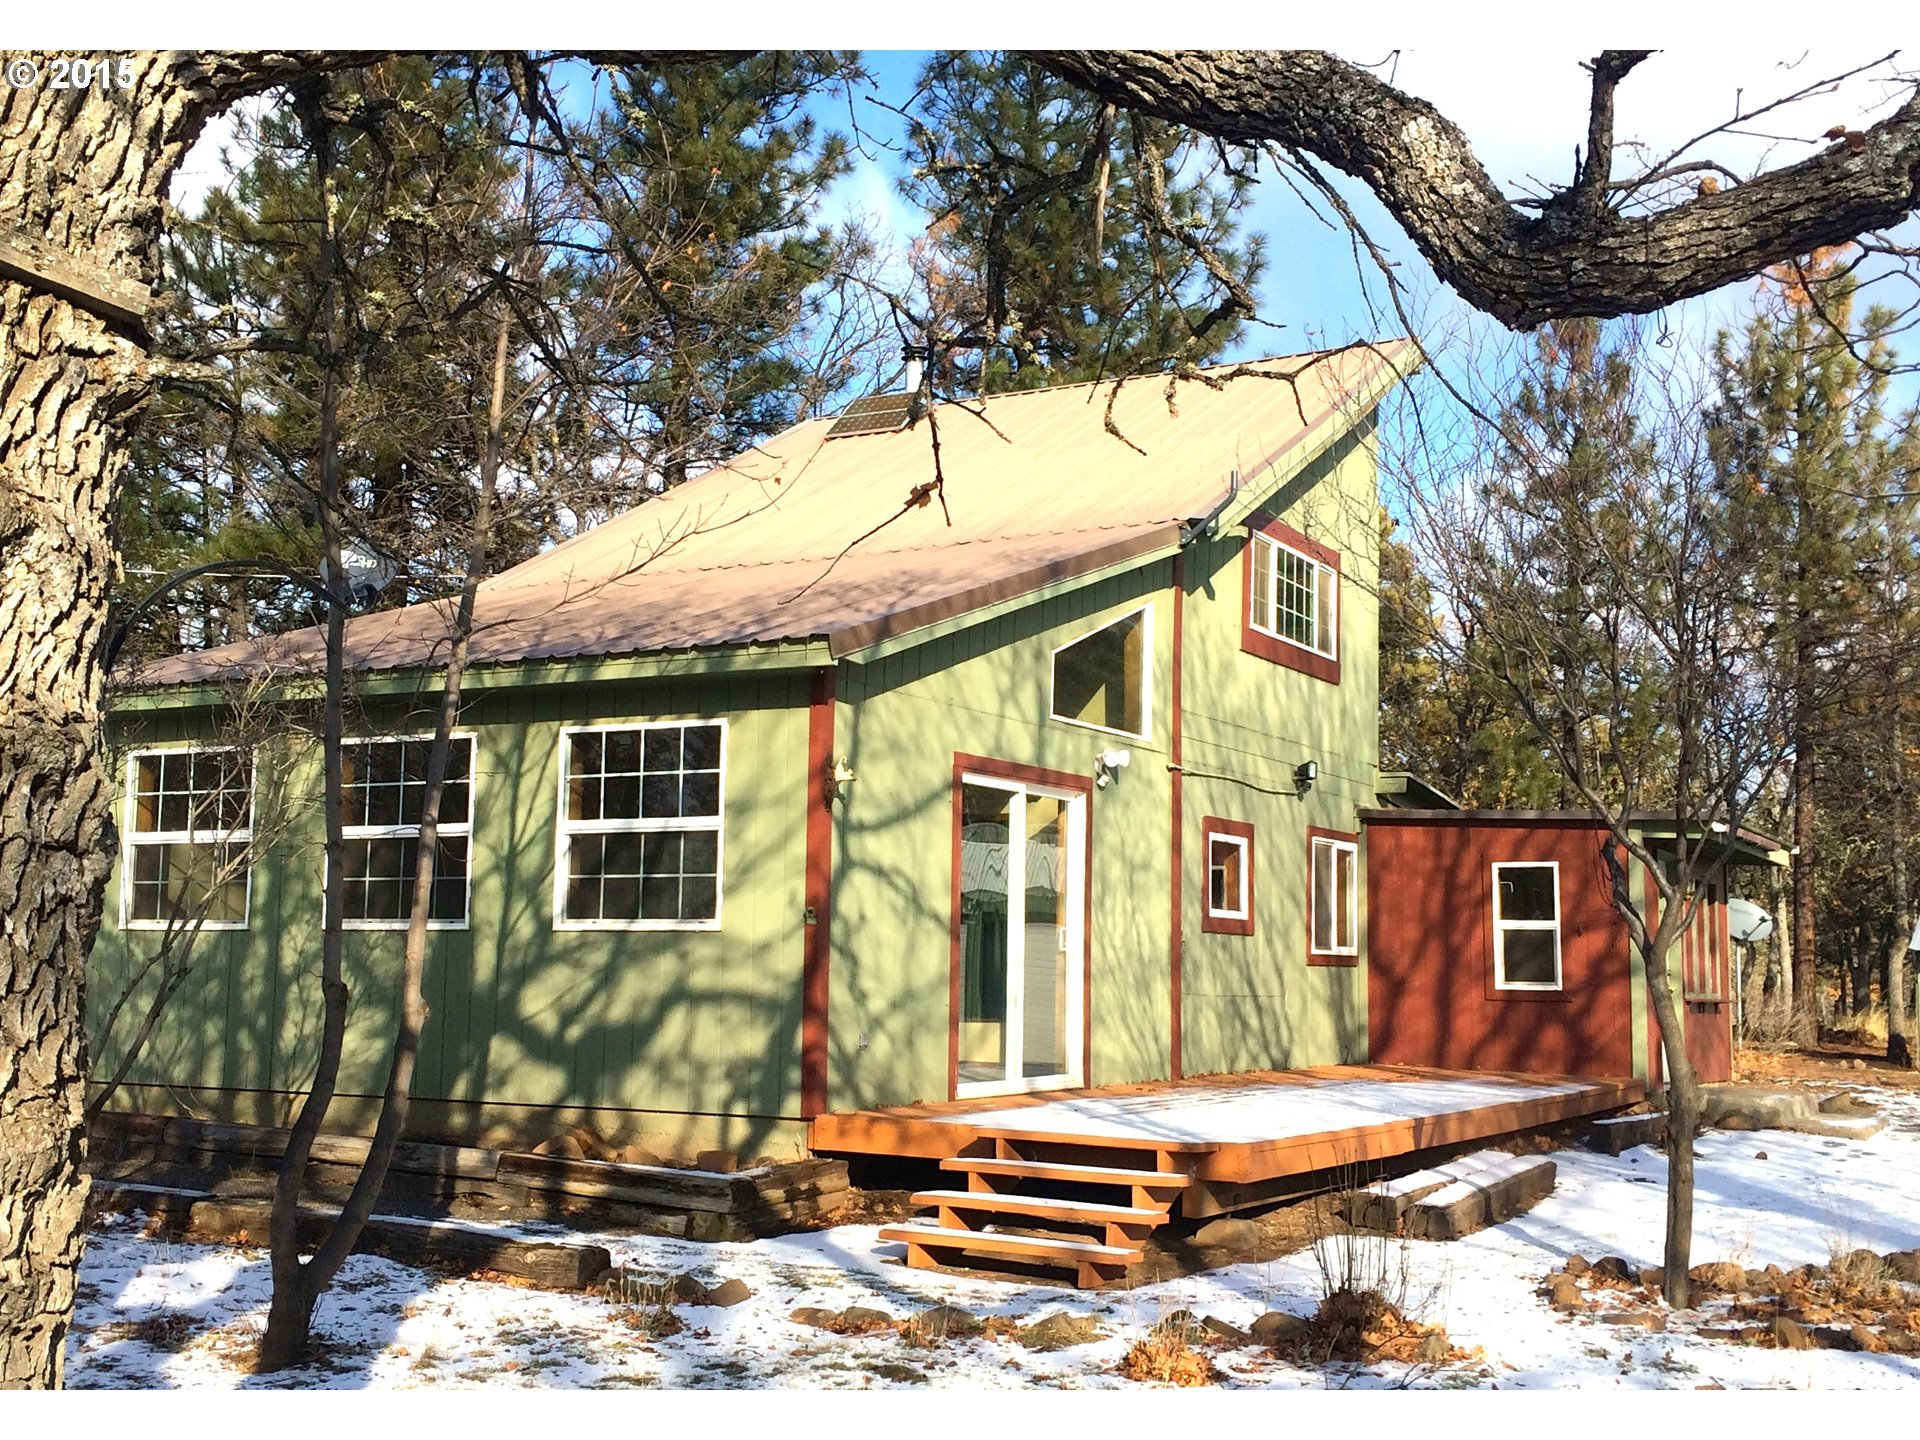 282 Old Mtn Rd, Goldendale, WA